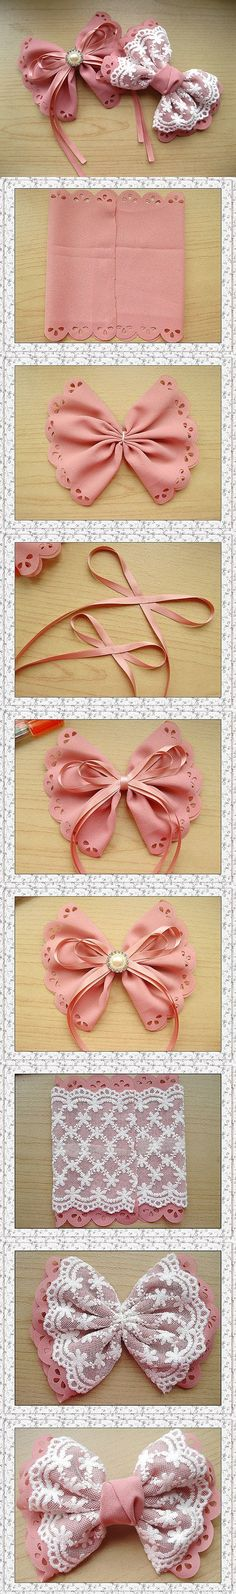 DIY 8211; Pink Ribbon Shaped Bow